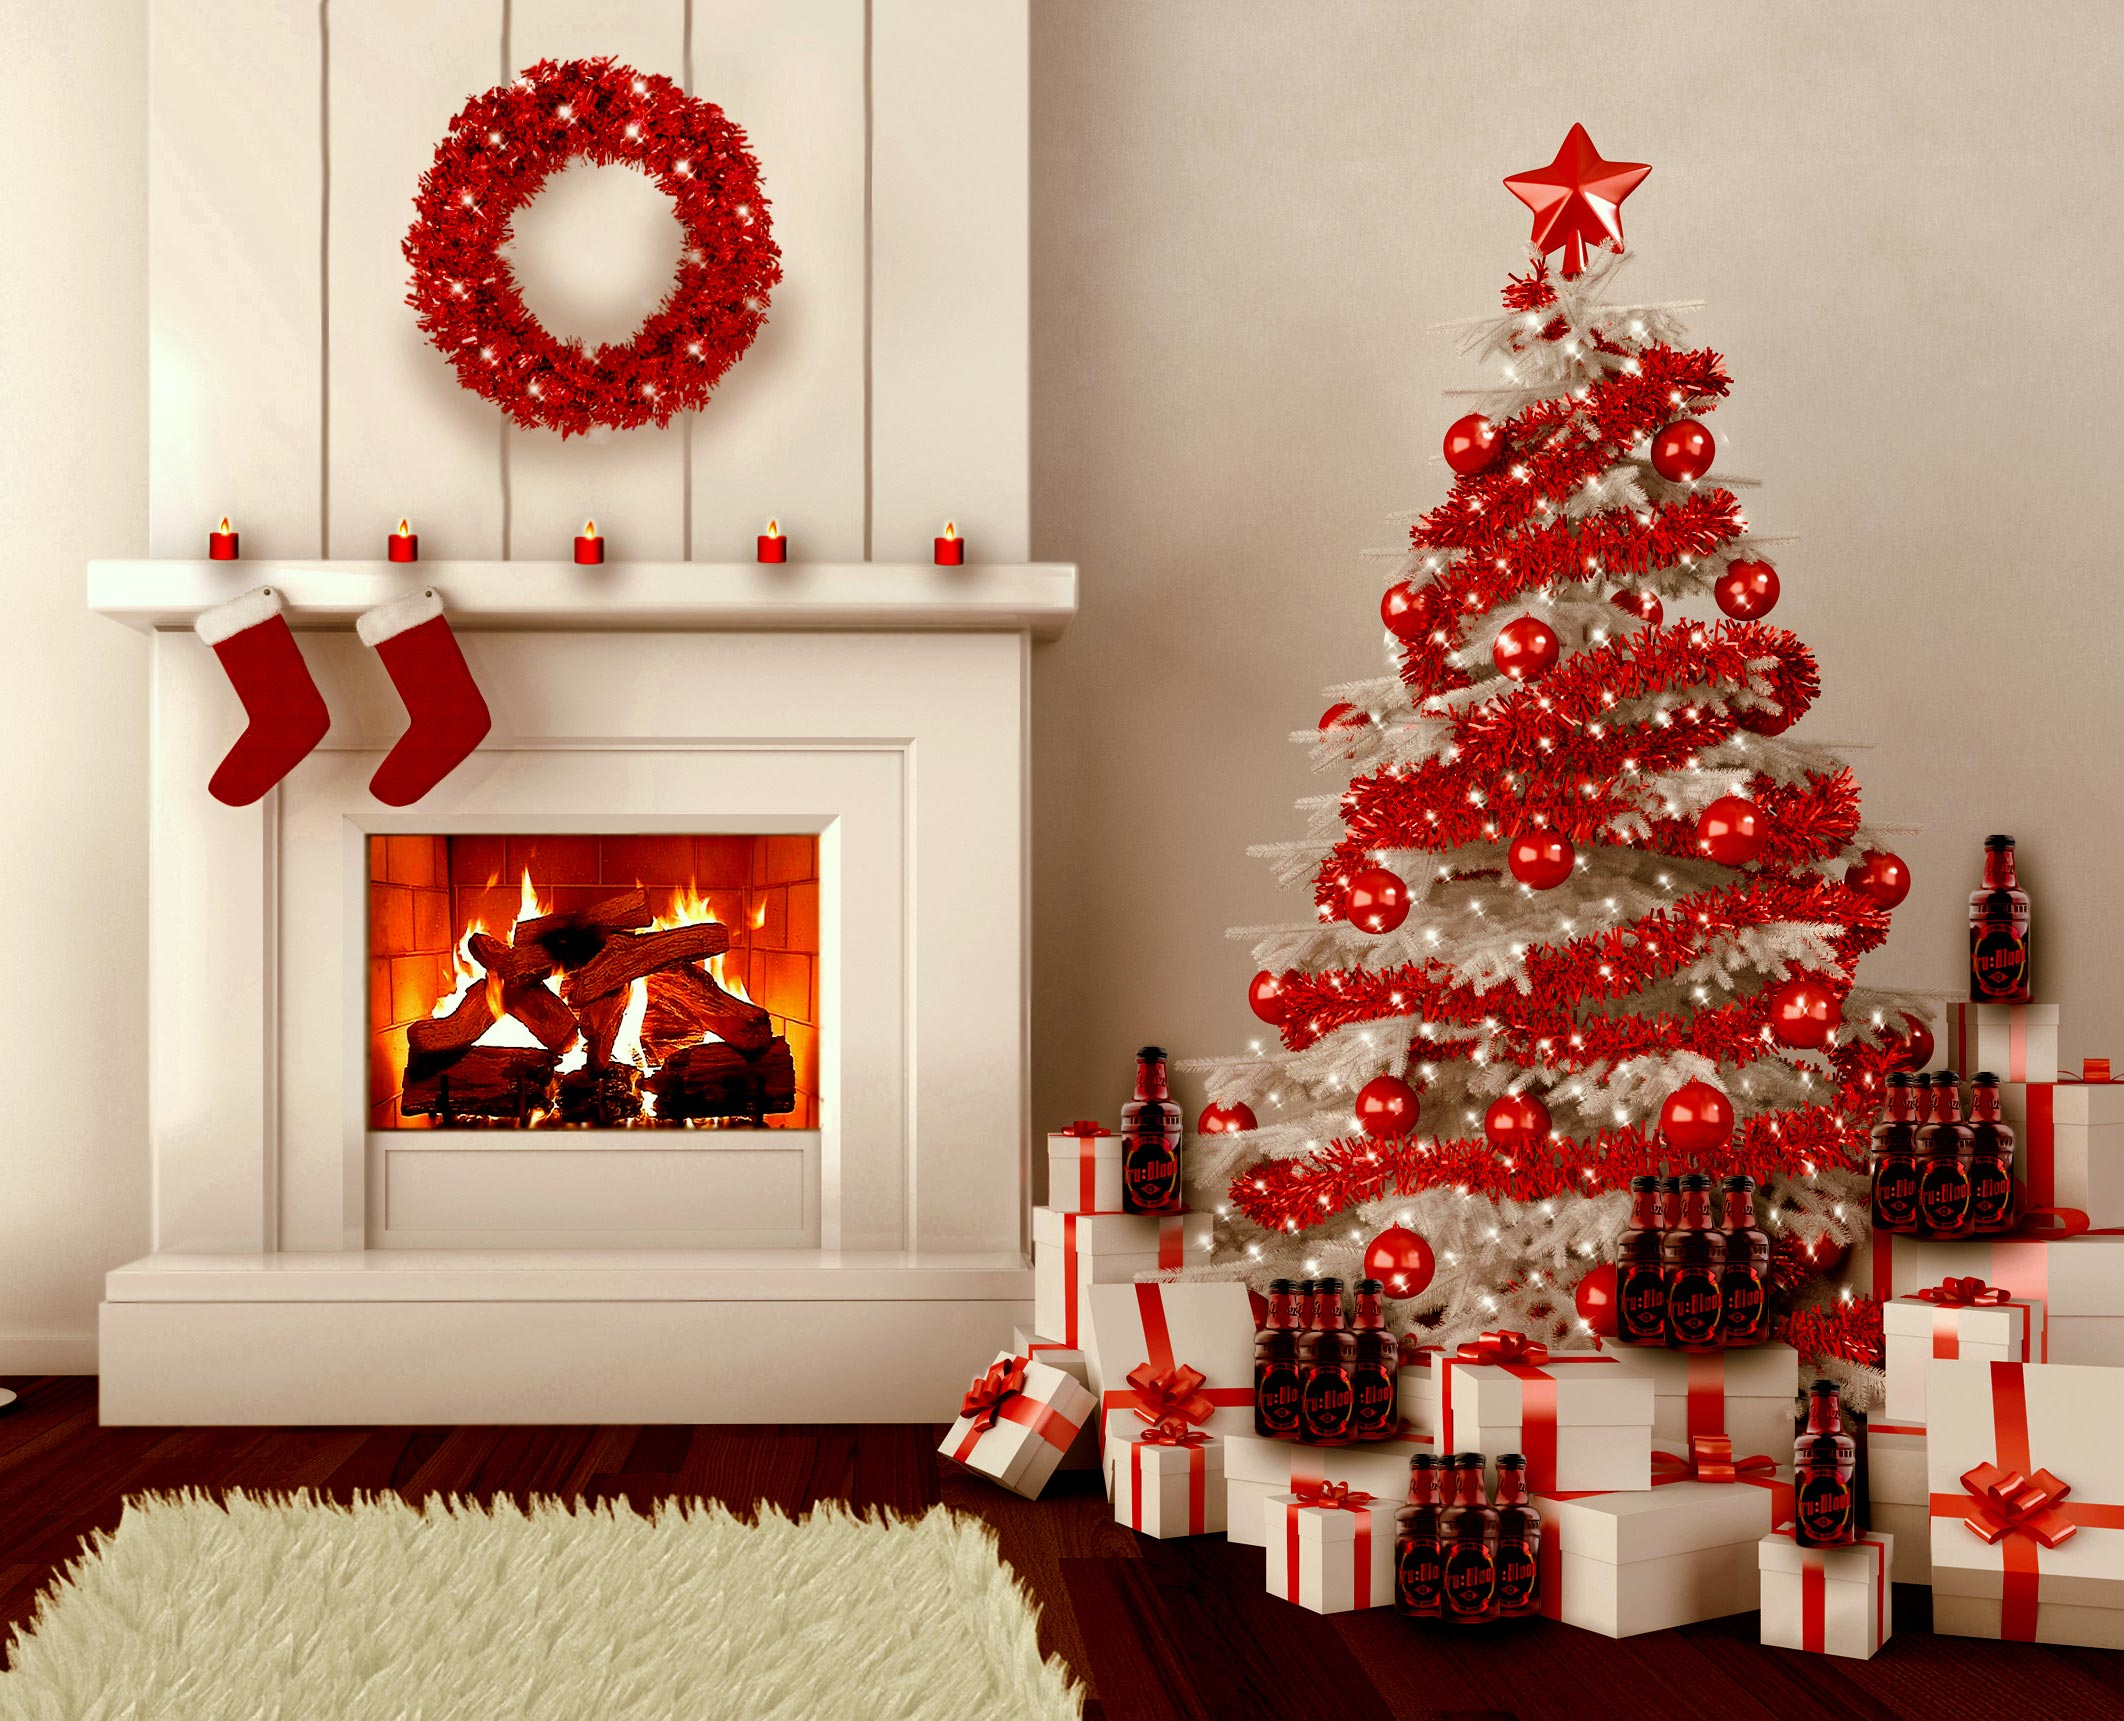 red christmas tree decorations ideas - White Christmas Tree With Red Decorations